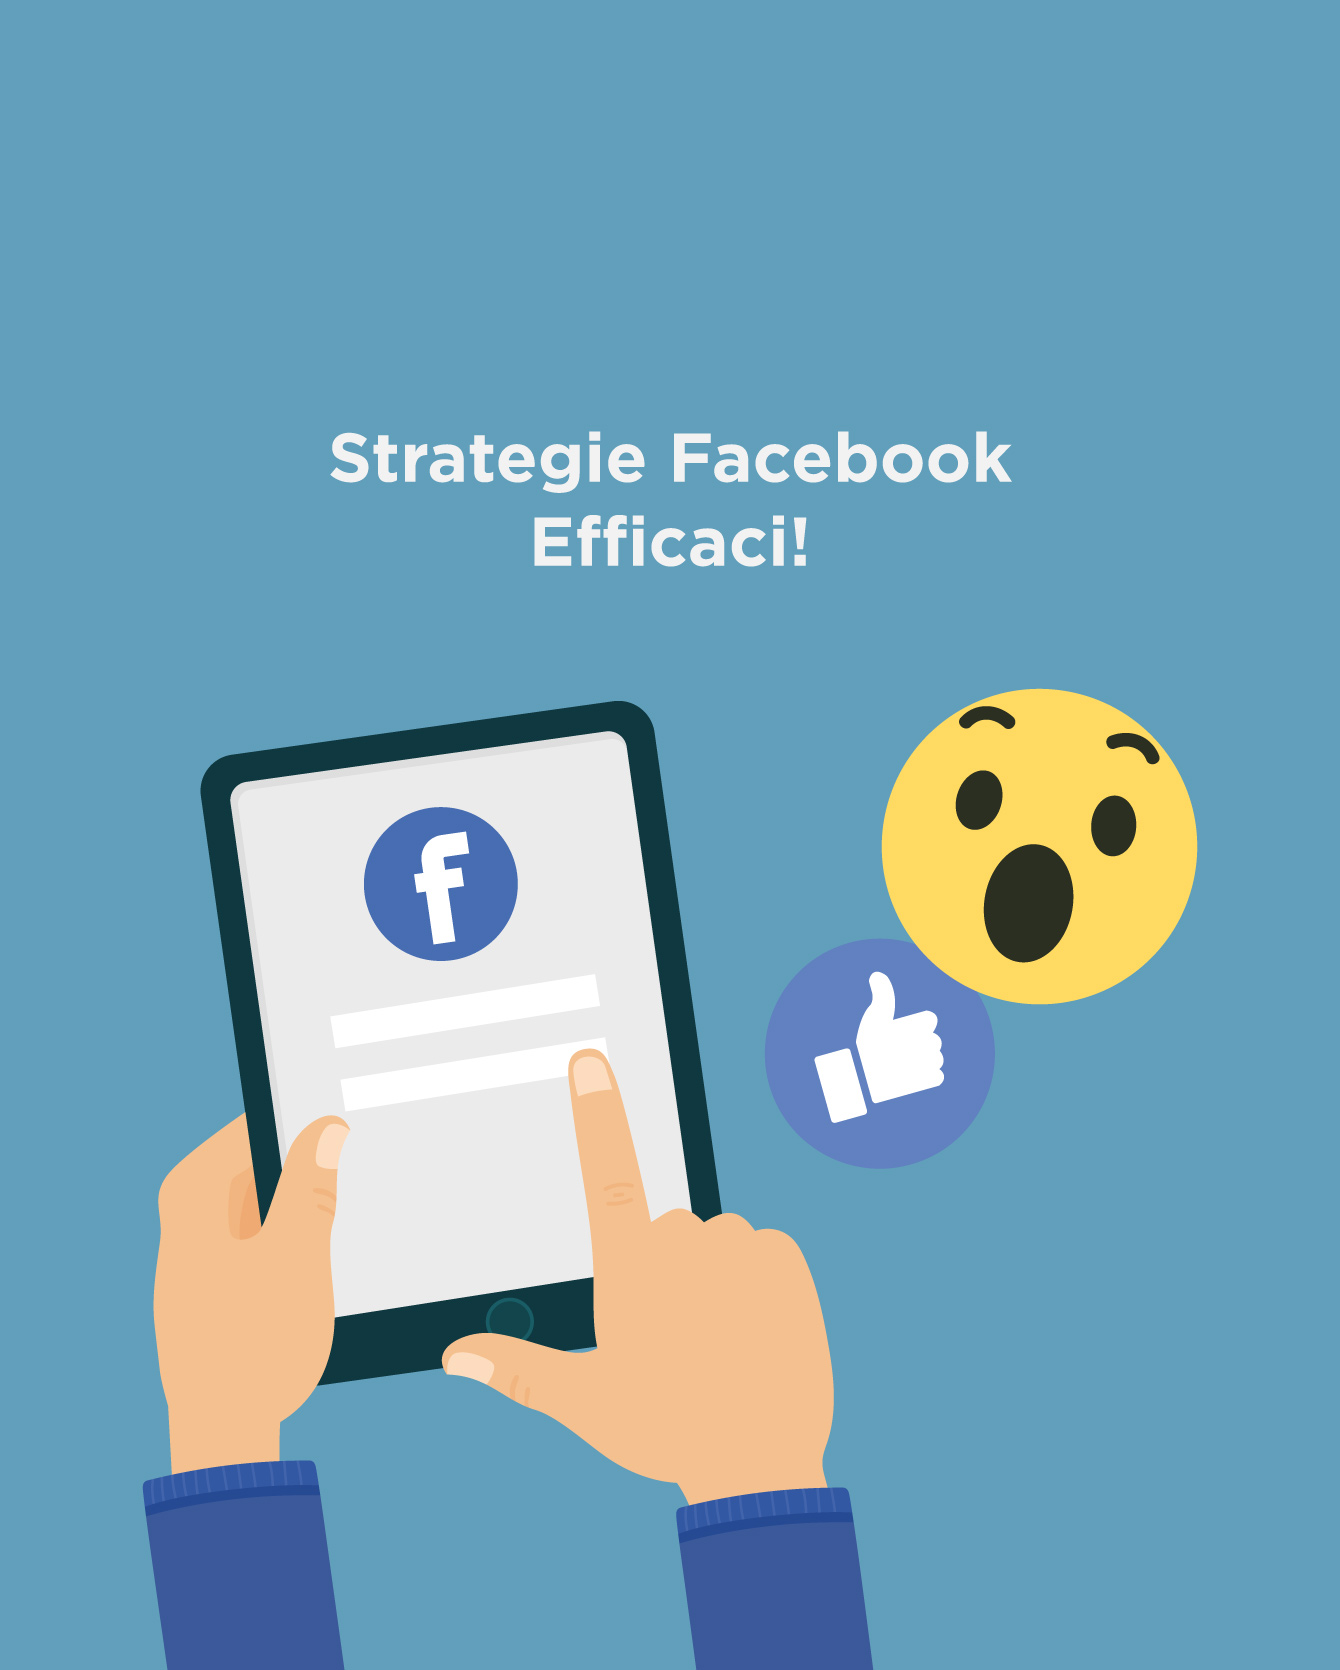 Strategia Facebook: come costruirla in maniera efficace